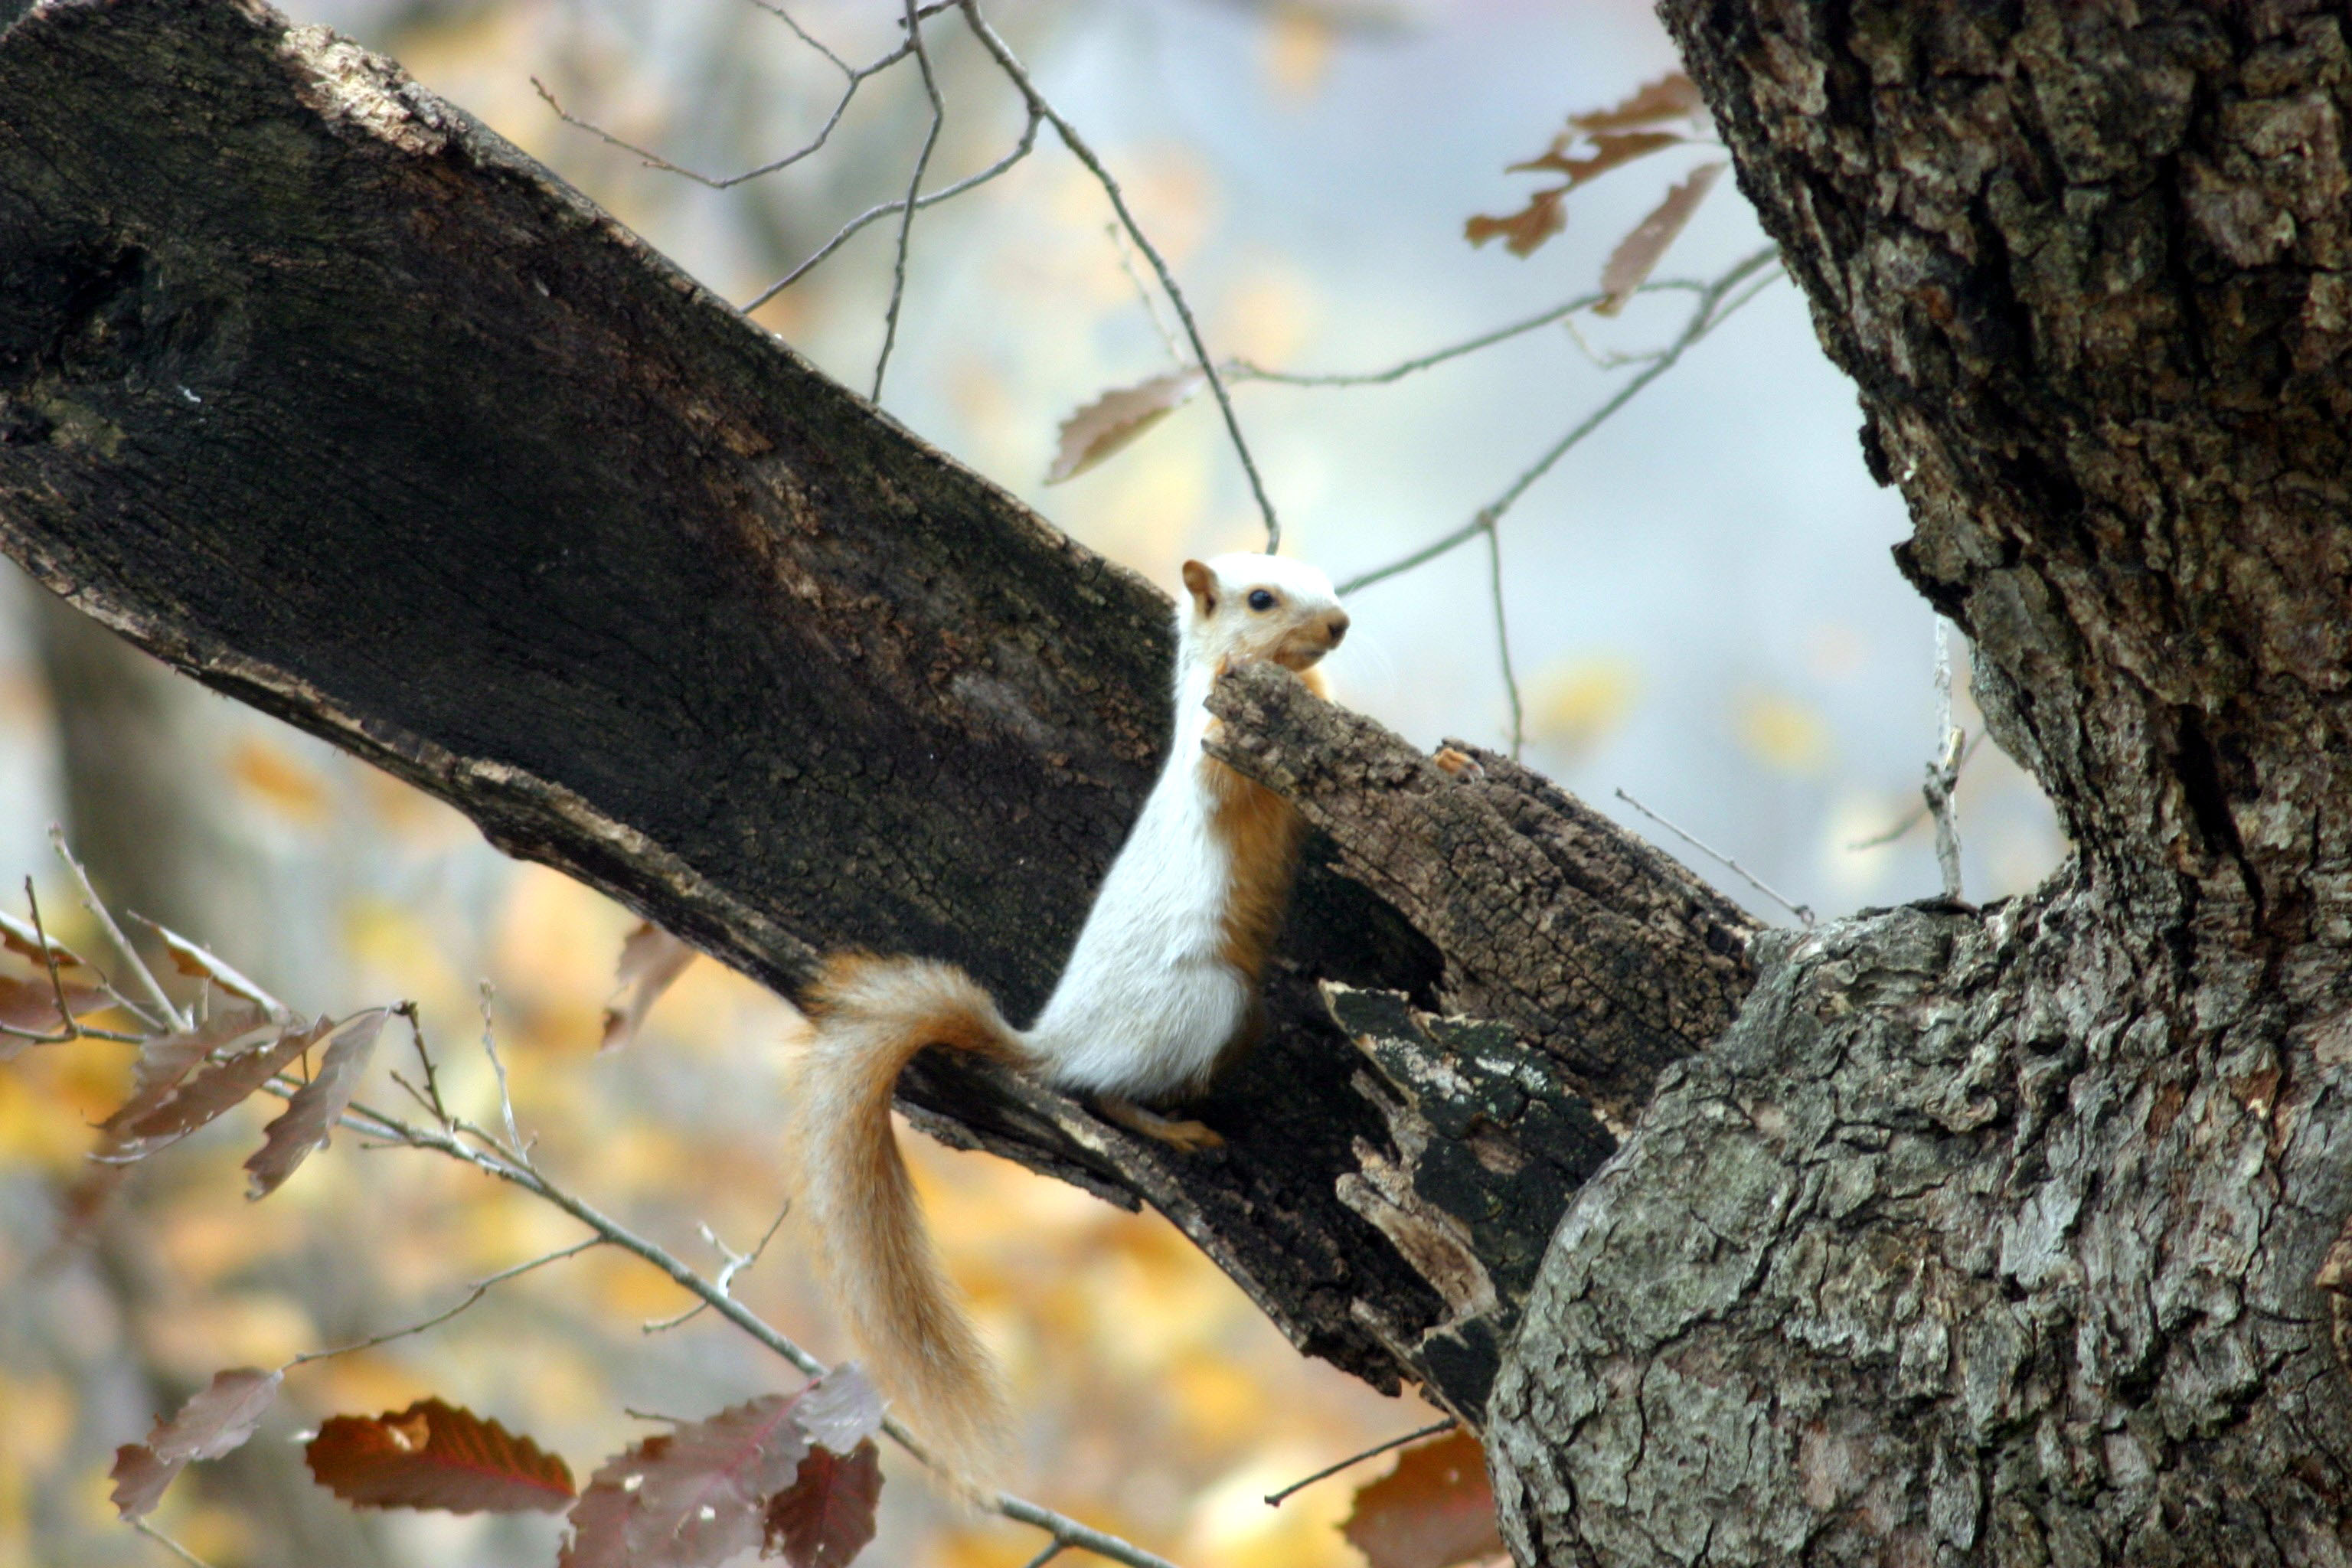 White Squirrel 27NOV05.jpg